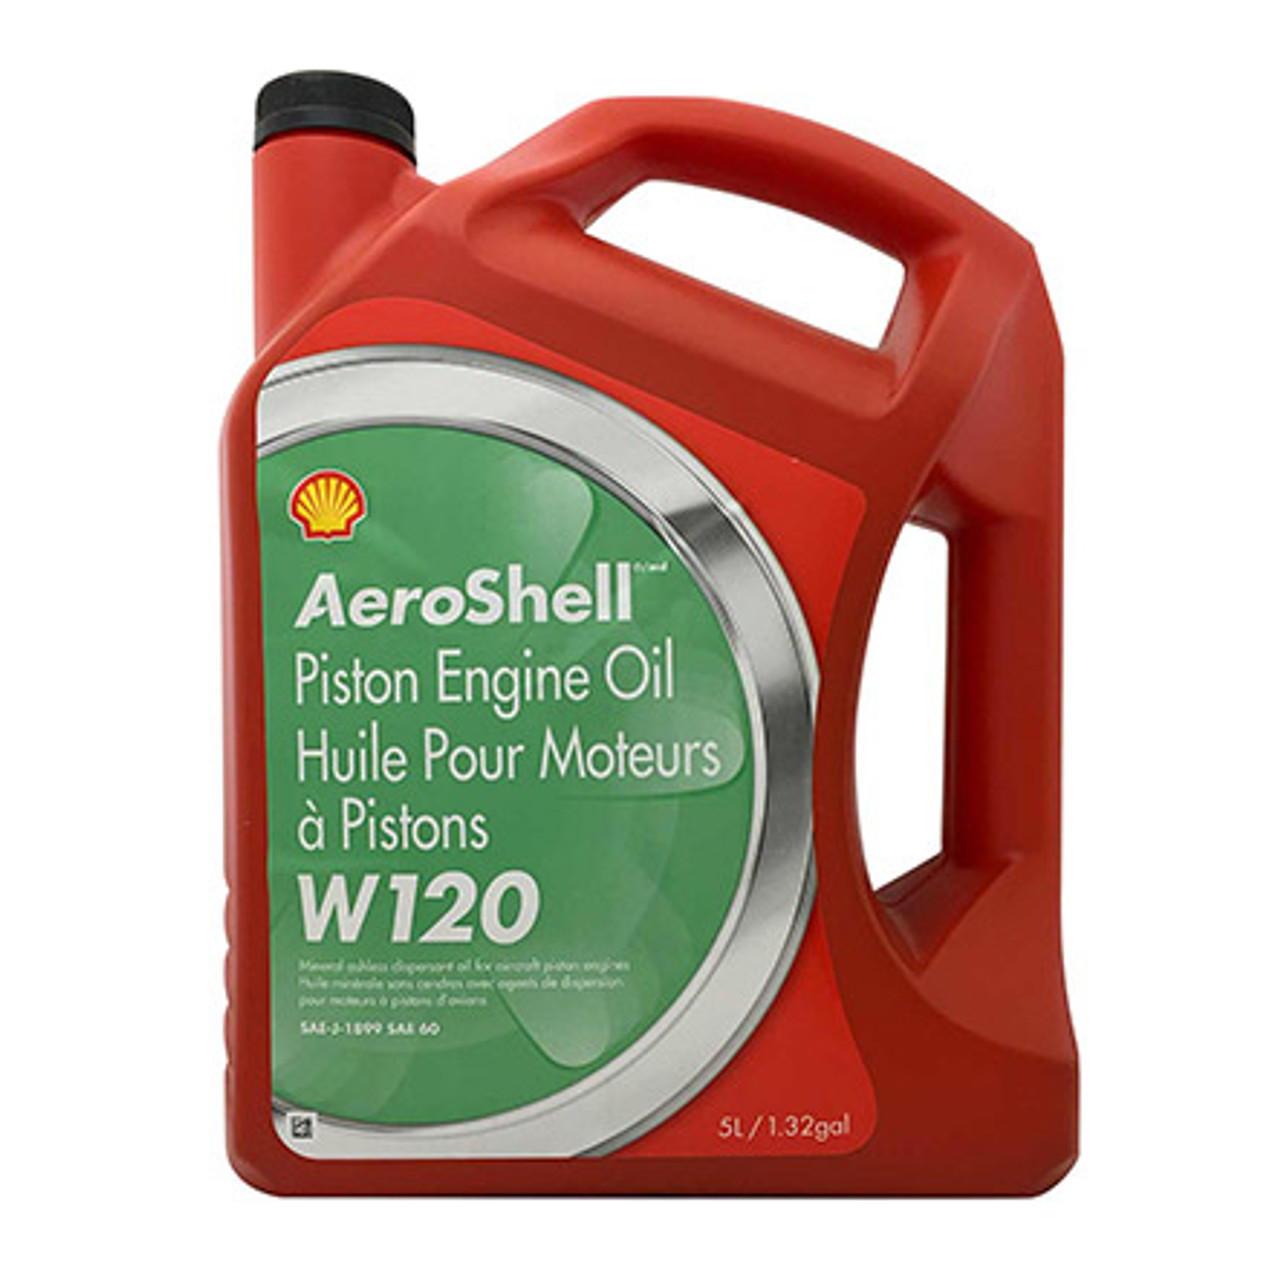 AeroShell W120 Aircraft Piston Engine Oil - 5L Jug